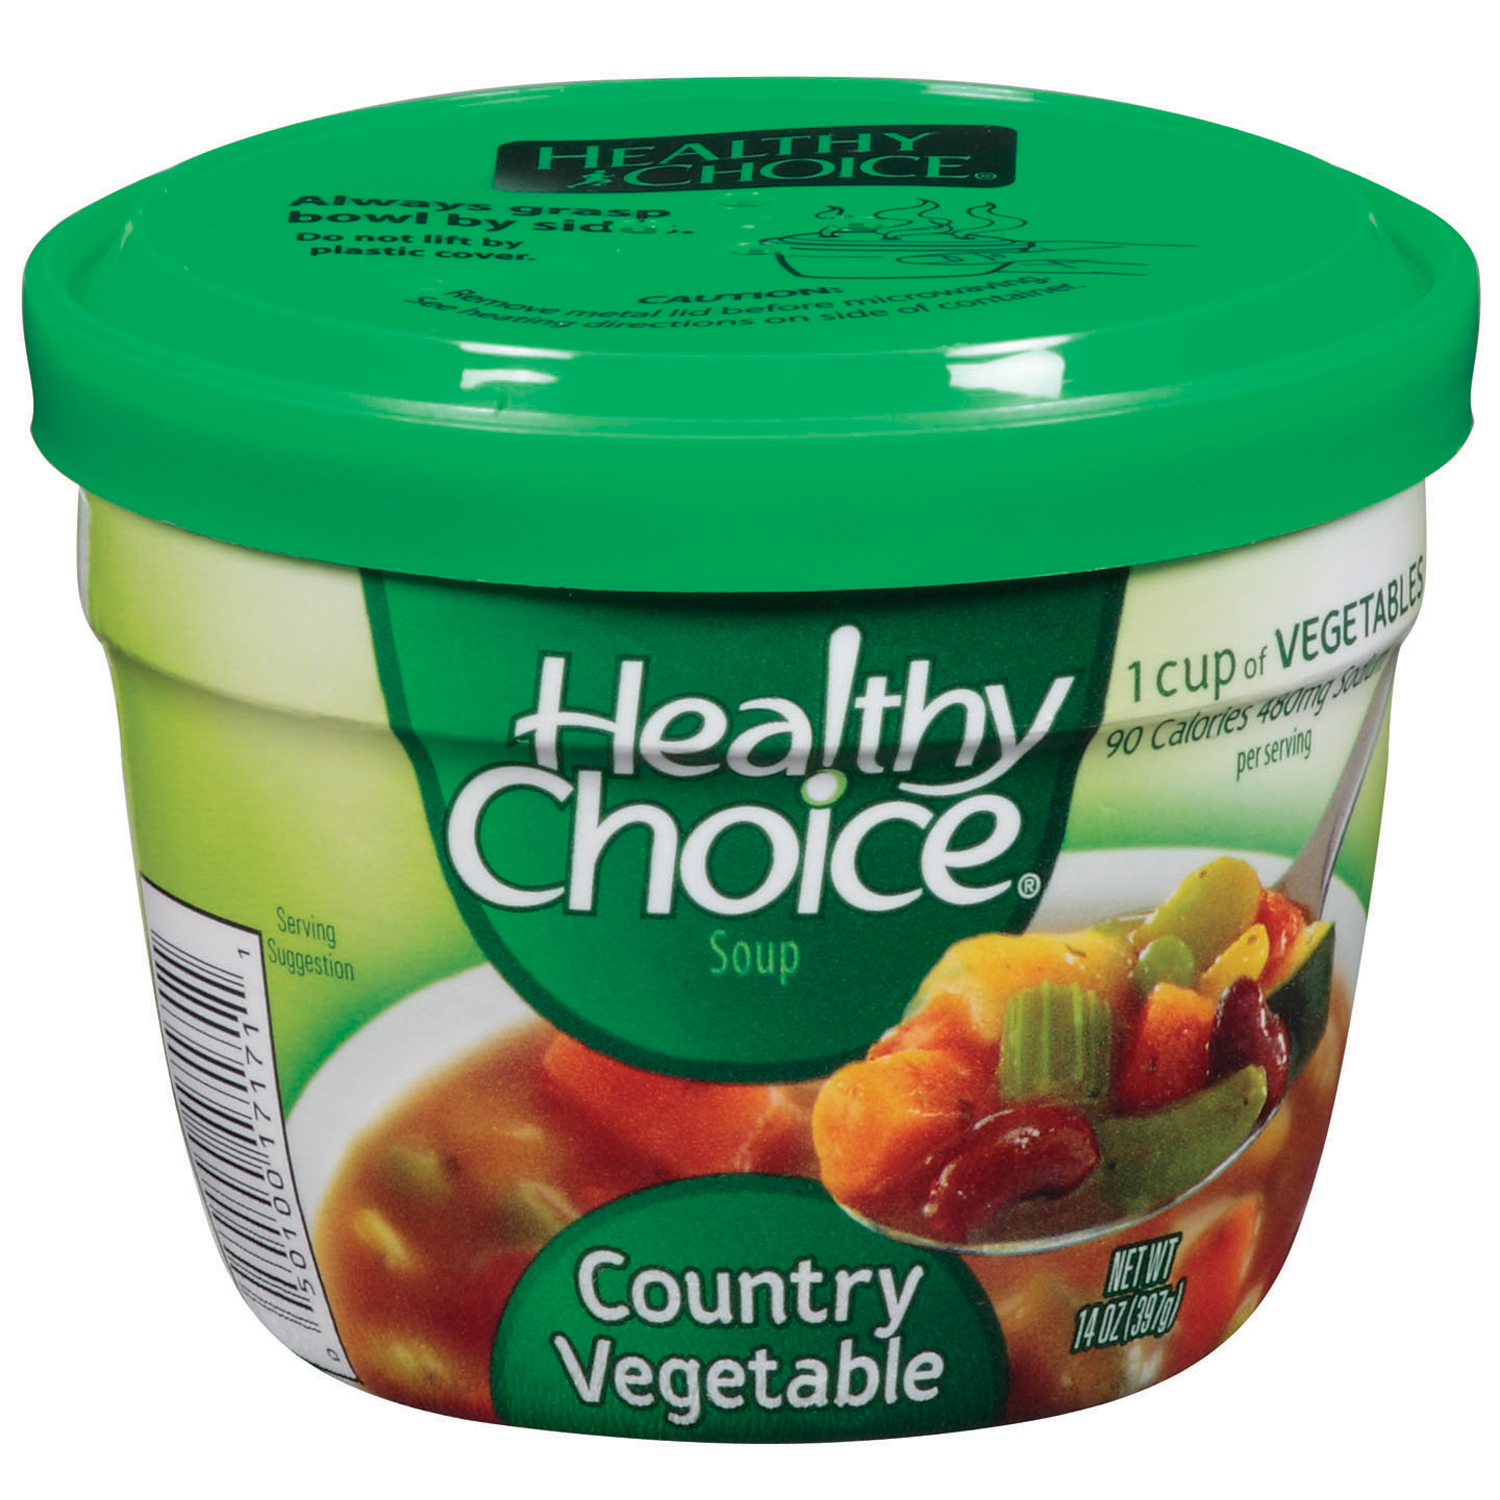 Healthy Choice Country Vegetable Soup, 14 oz by ConAgra Foods Inc.